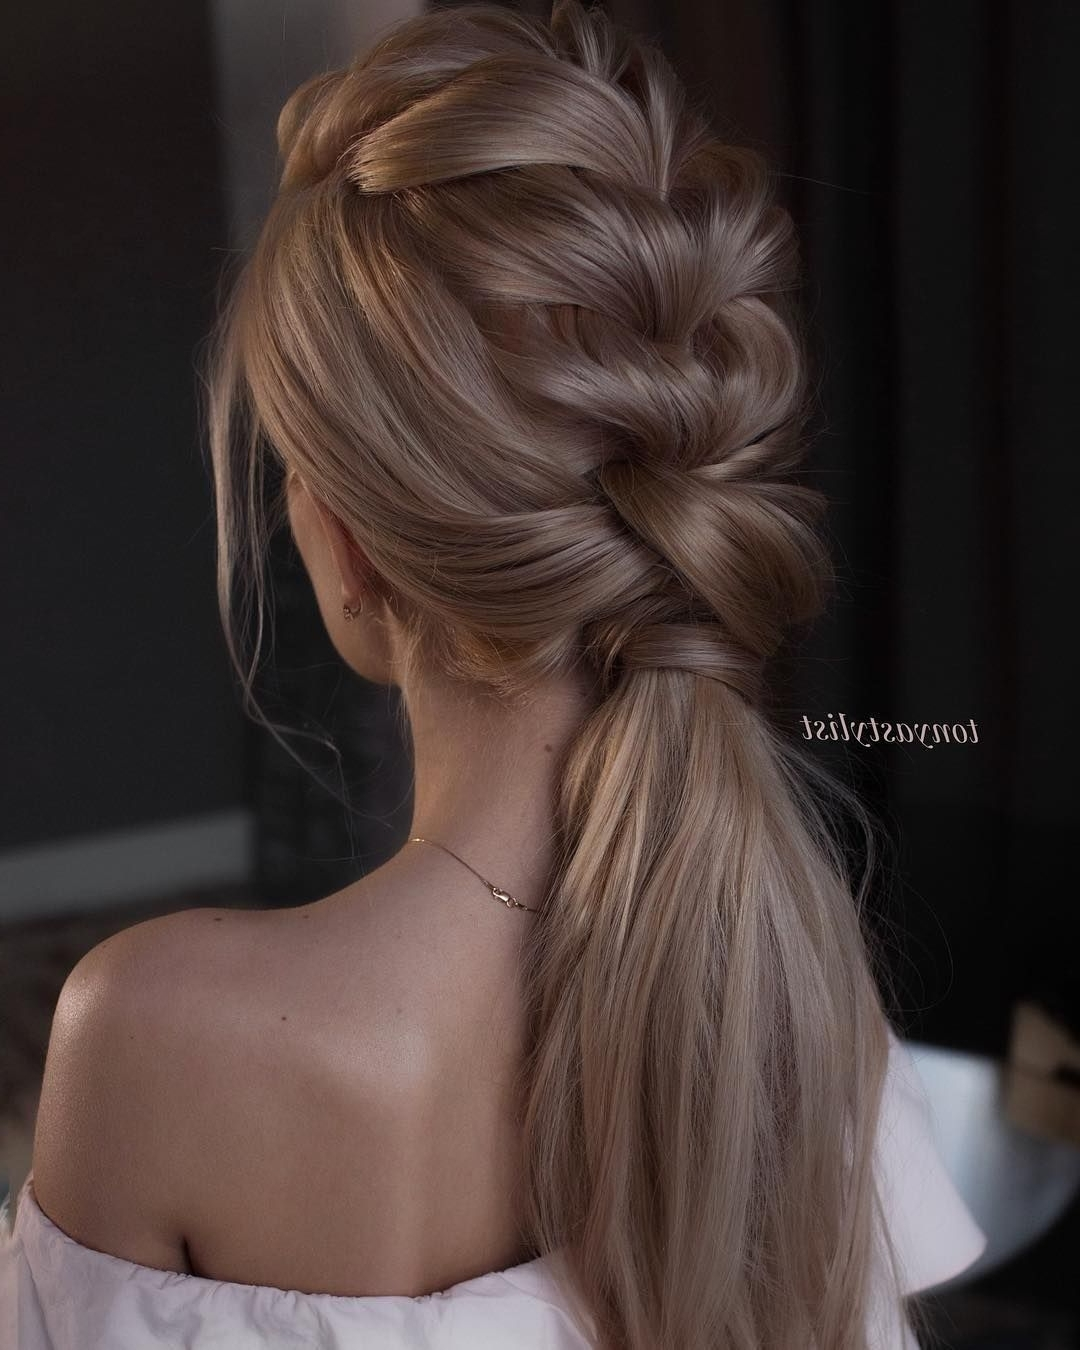 Widely Used Romantically Messy Ponytail Hairstyles Regarding Ponytail Hairstyles #weddinghair #ponytails #wedding #hairstyles (View 20 of 20)